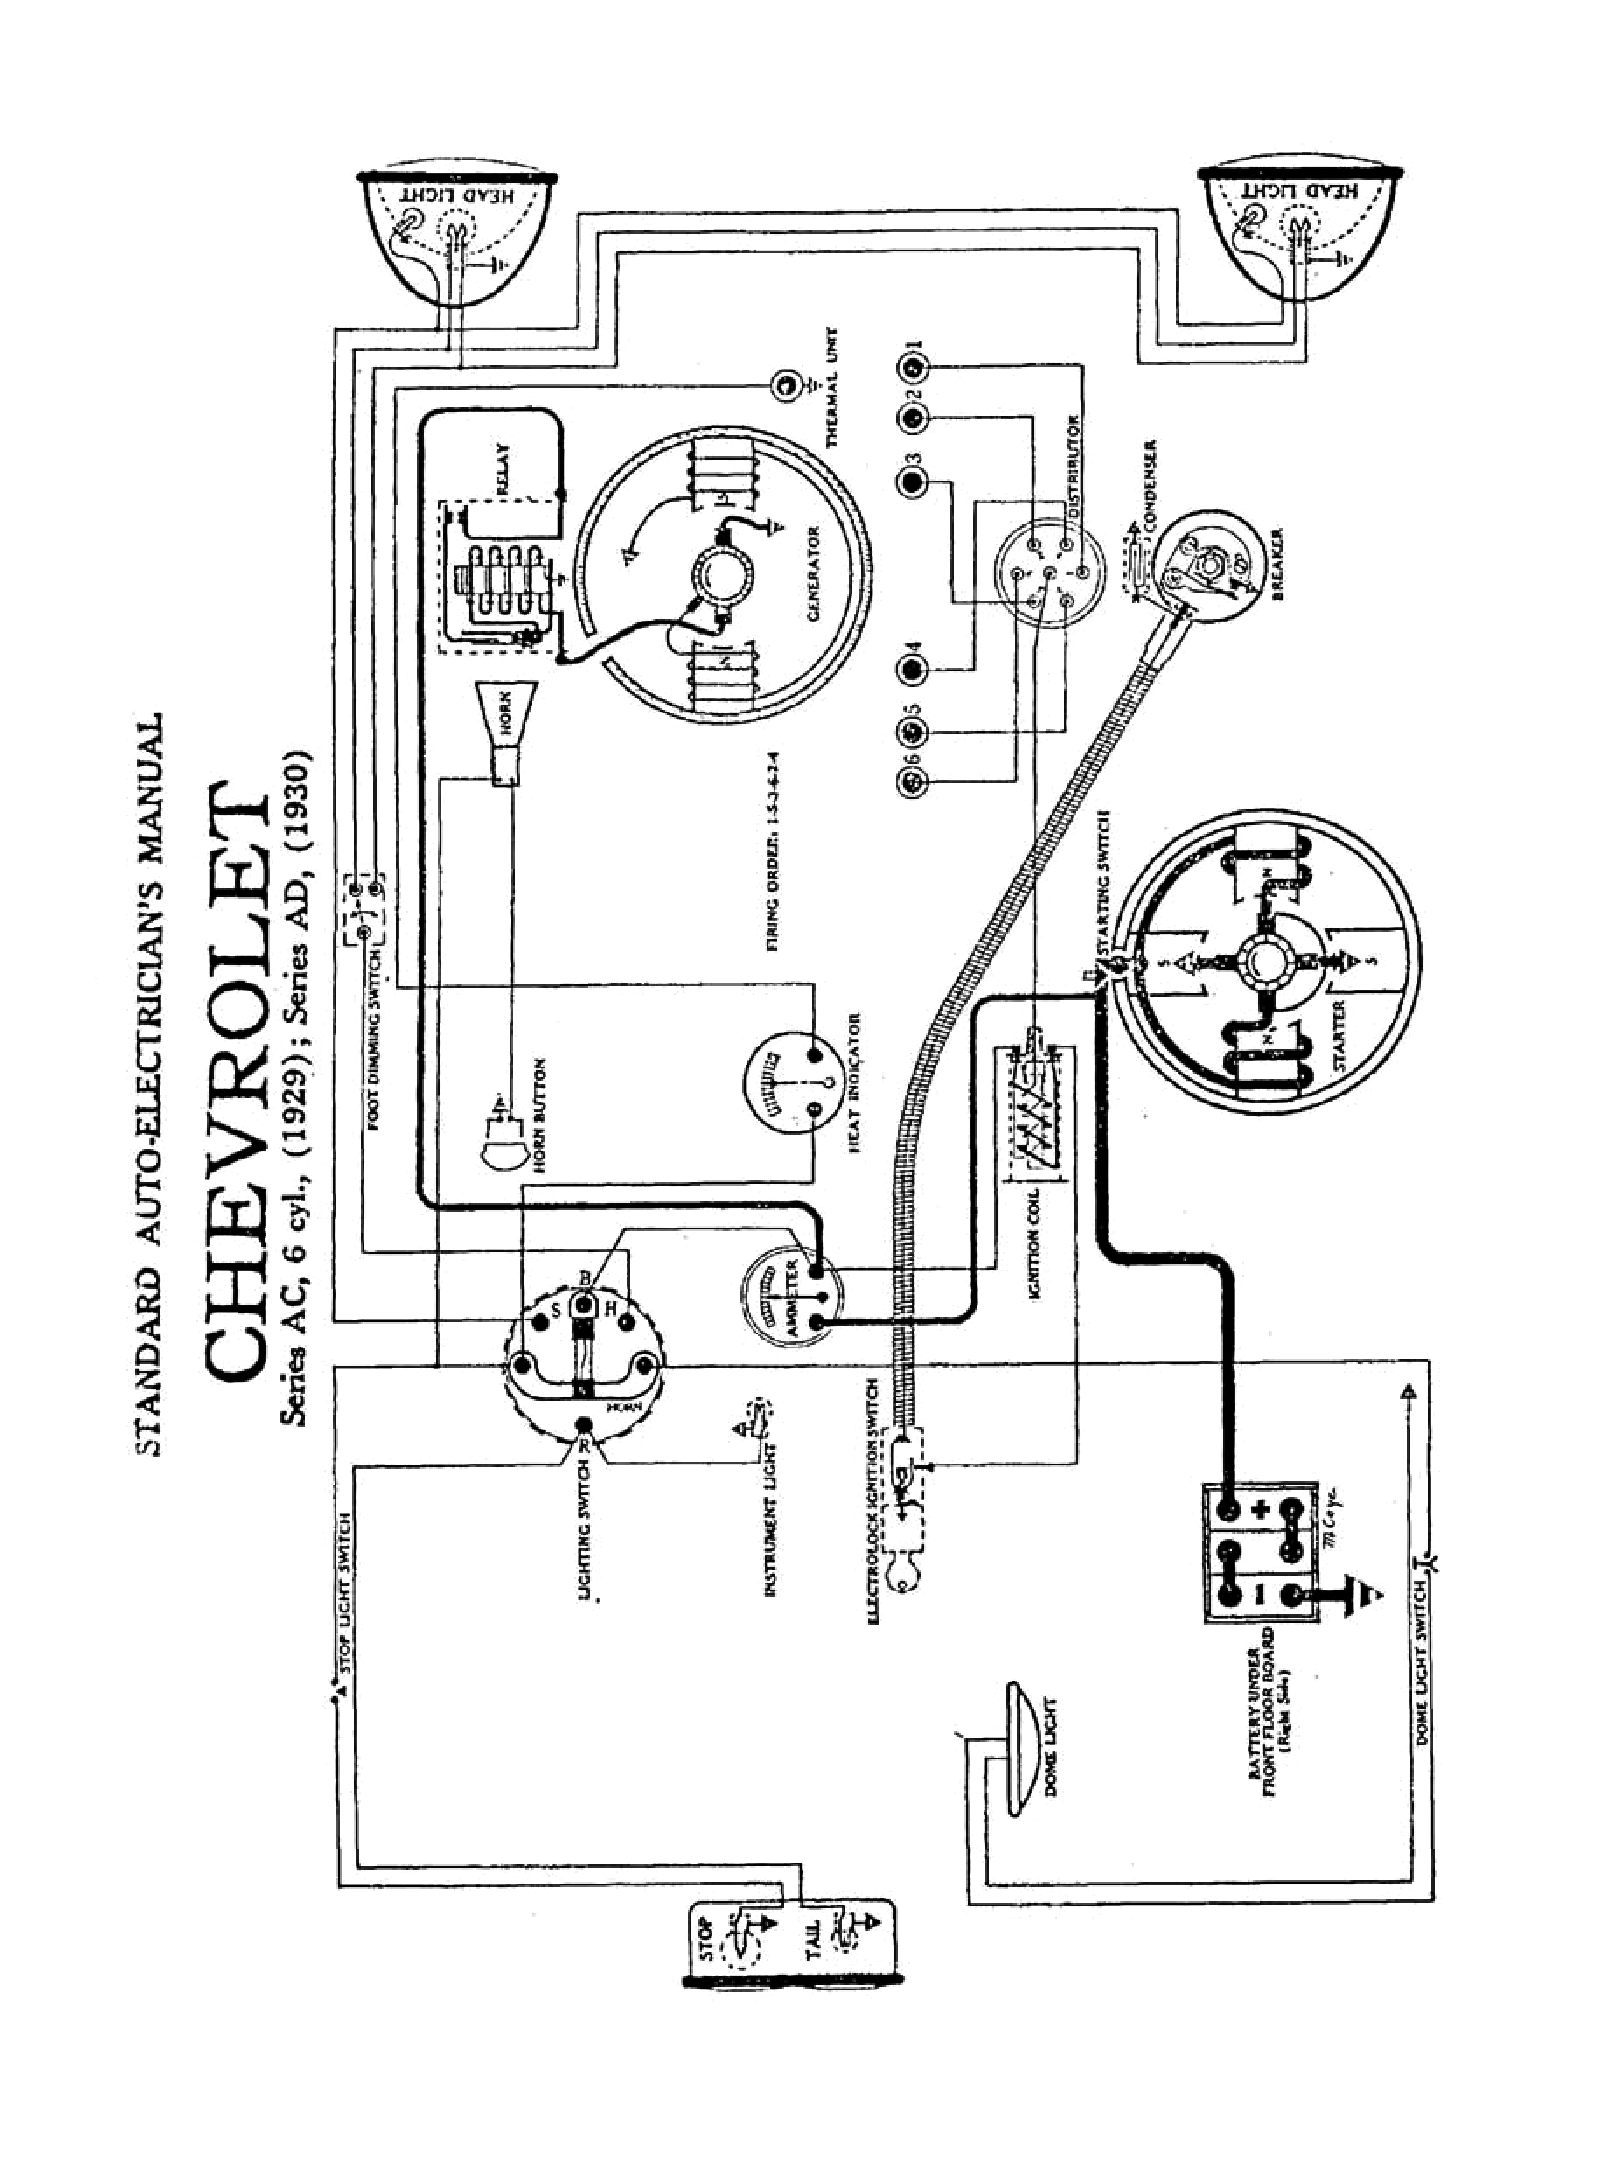 1940 Ford Wiring Diagram Free Download Schematic